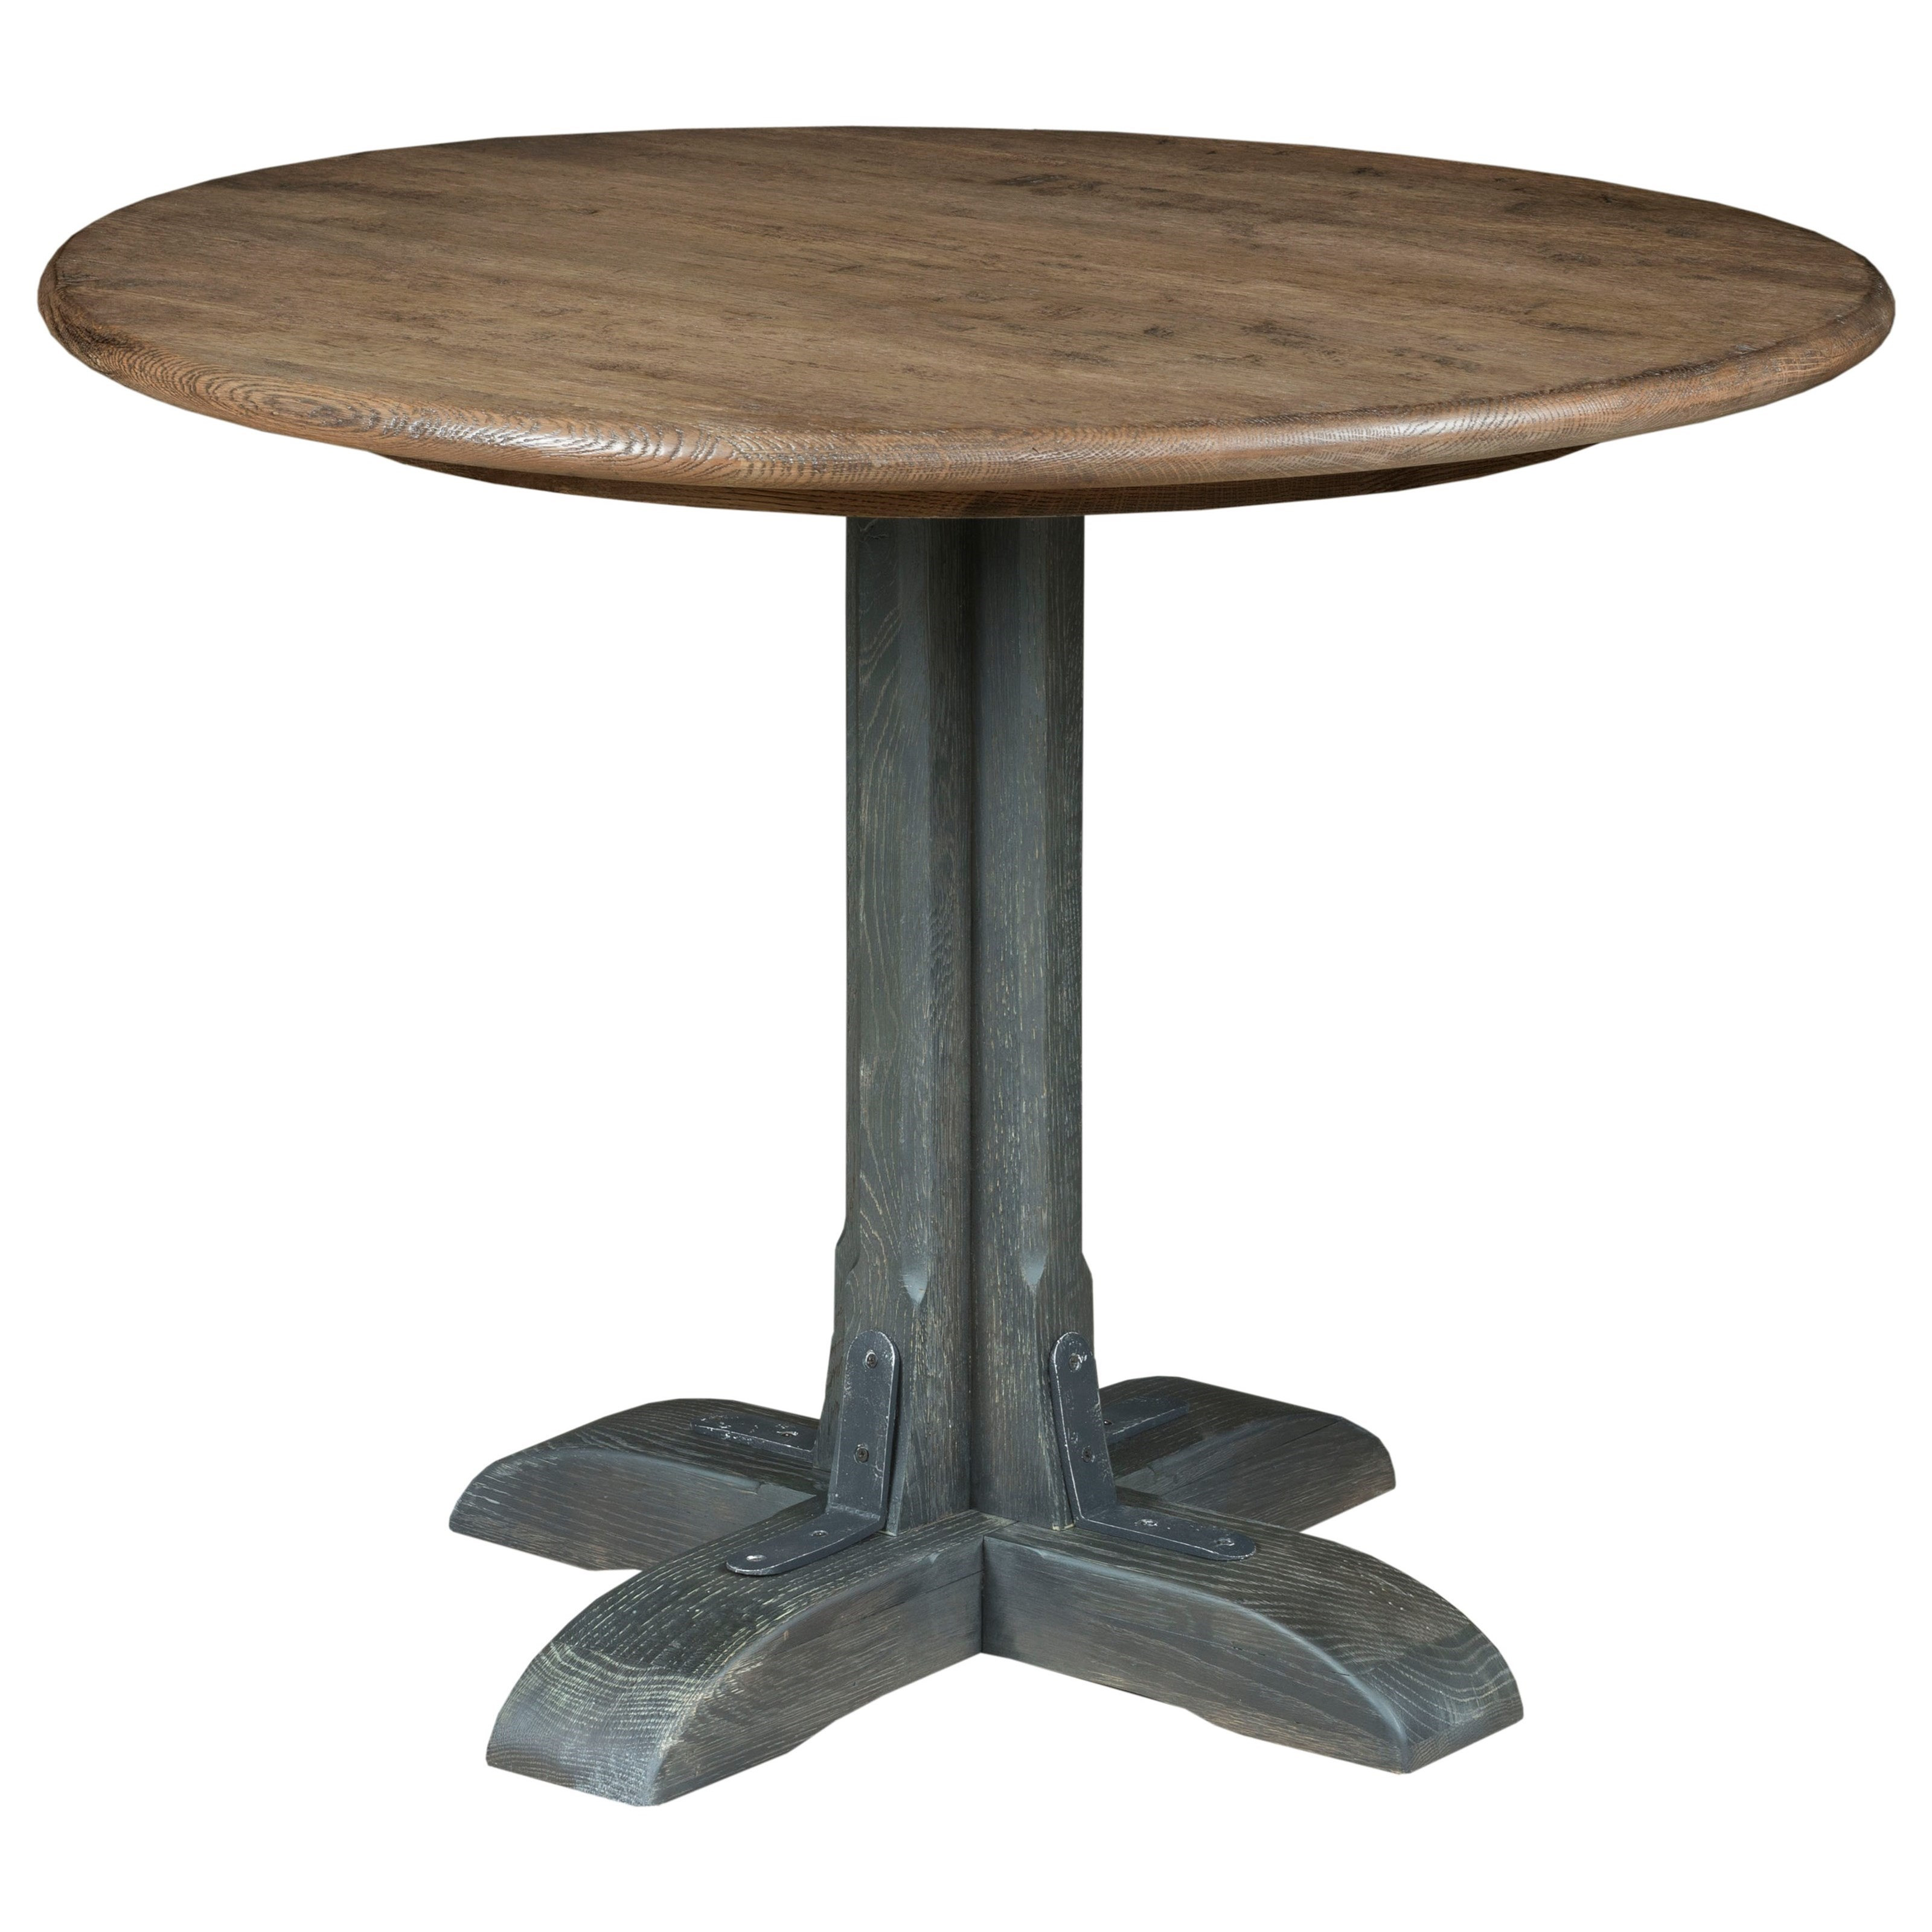 Trails Franklin Round Dining Table by Kincaid Furniture at Johnny Janosik